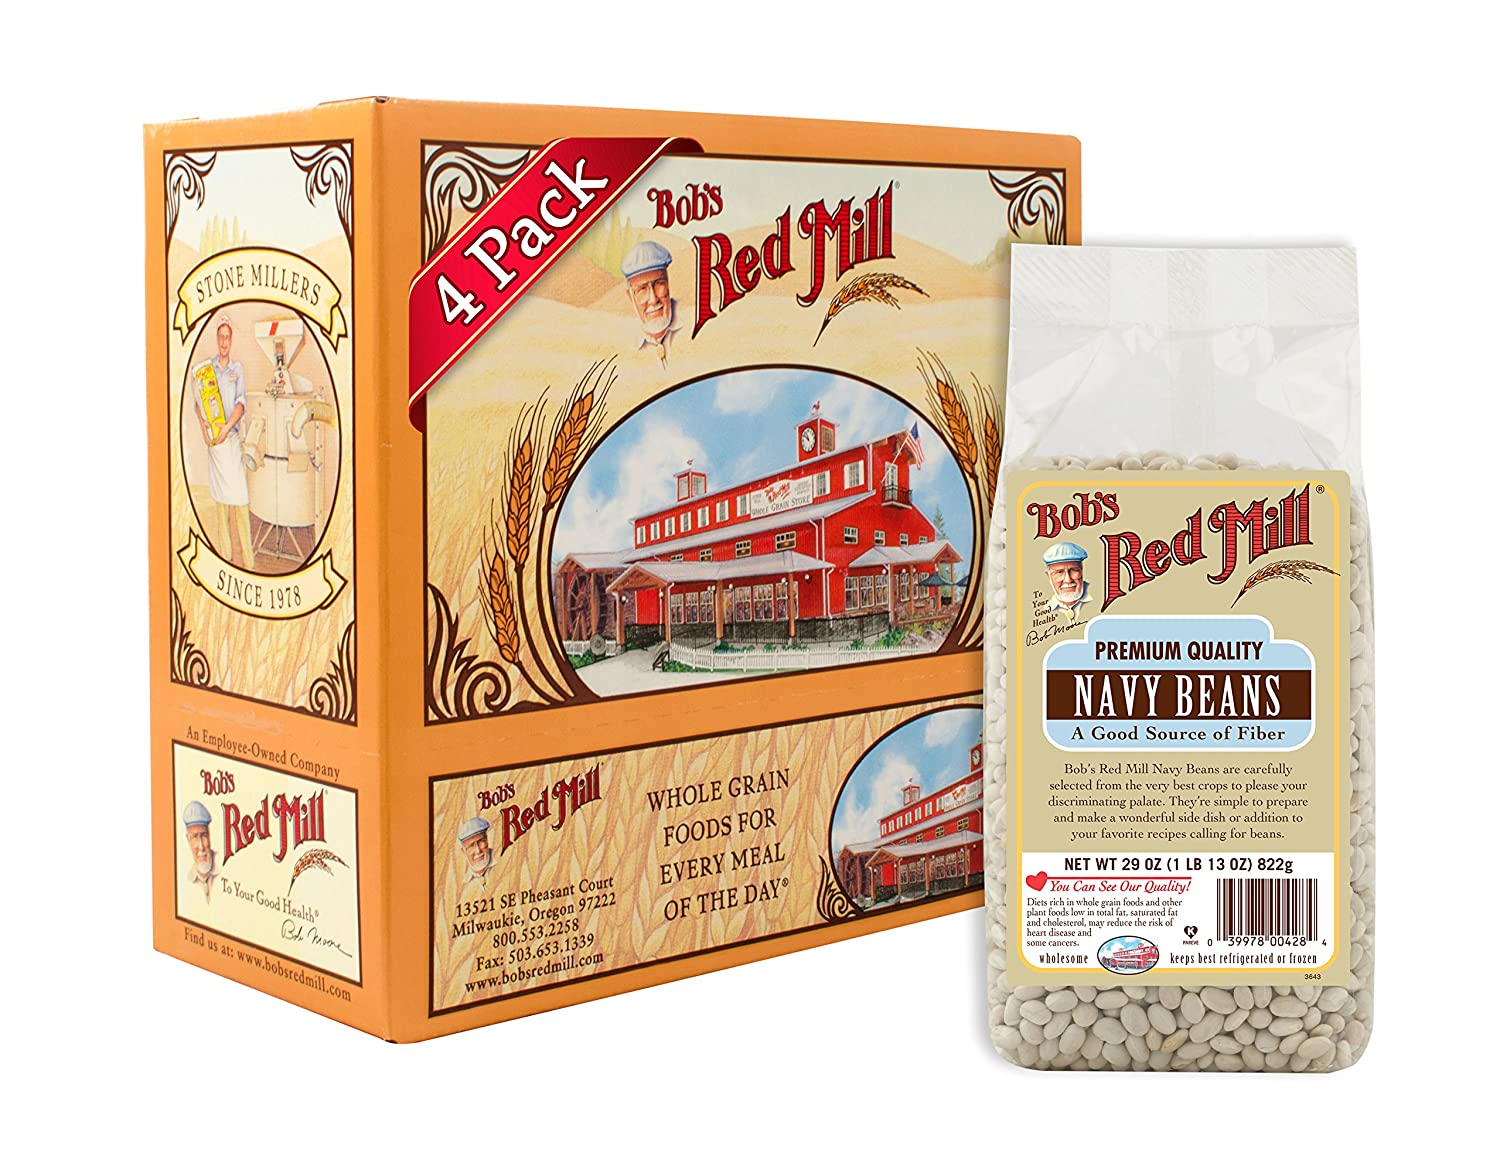 81b3db9b17e75c Amazon.com : Bob's Red Mill Navy Beans, 29 Ounce (Pack of 4) : Dried Kidney  Beans : Grocery & Gourmet Food